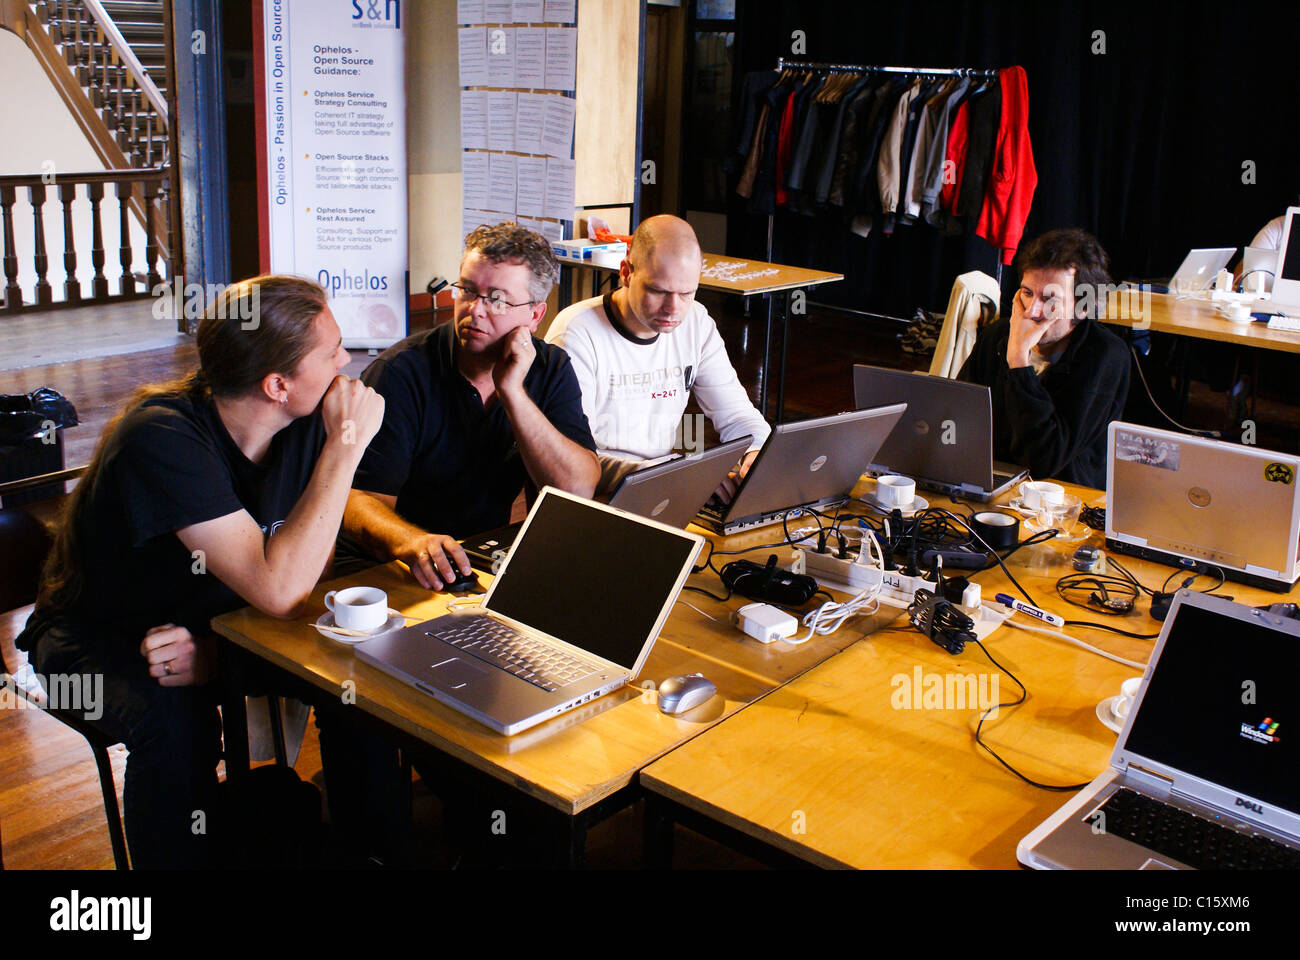 Open source software developers working together at a 'hackathon' meetup. - Stock Image